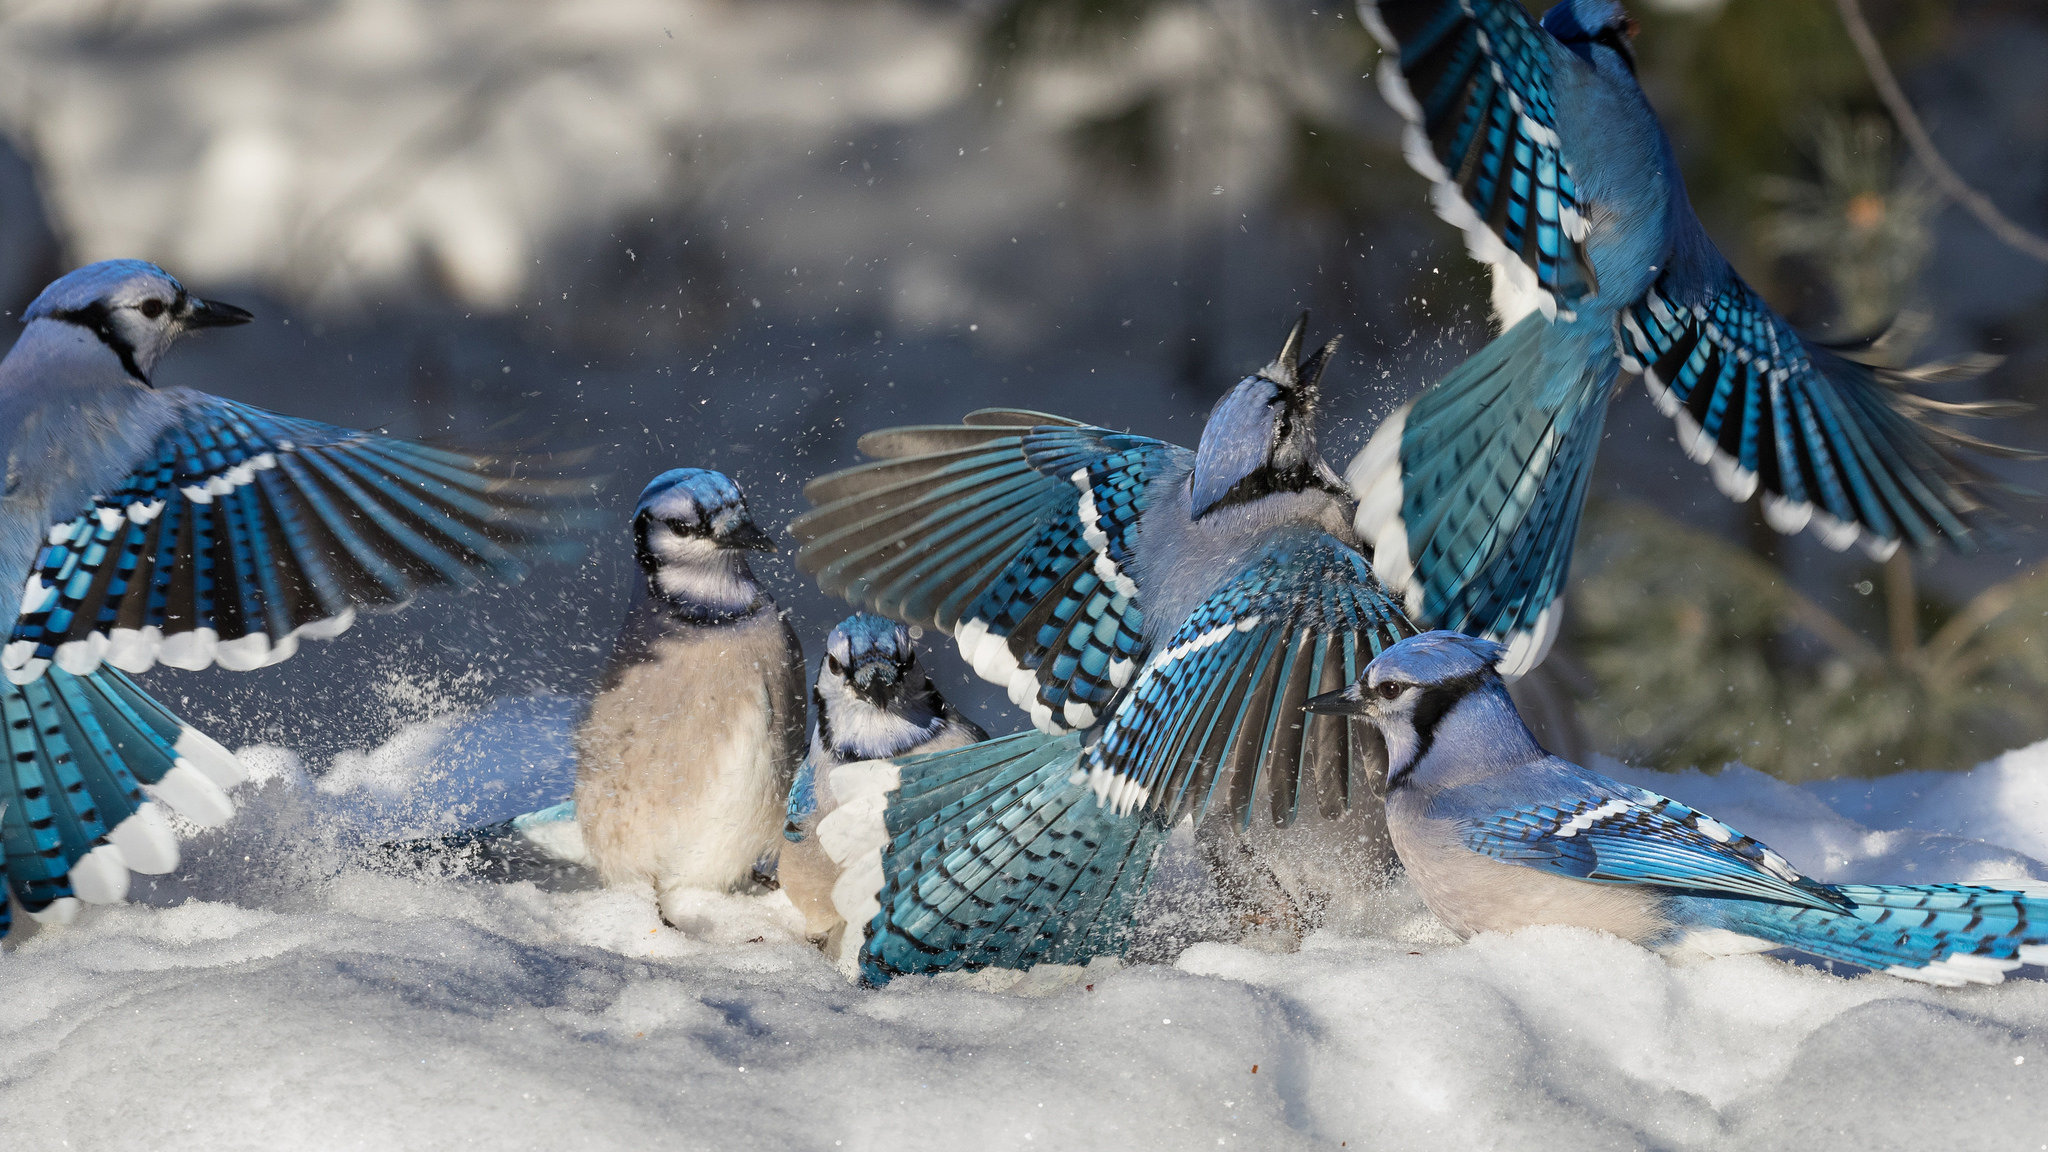 Download hd 2048x1152 Blue Jay desktop background ID:158378 for free